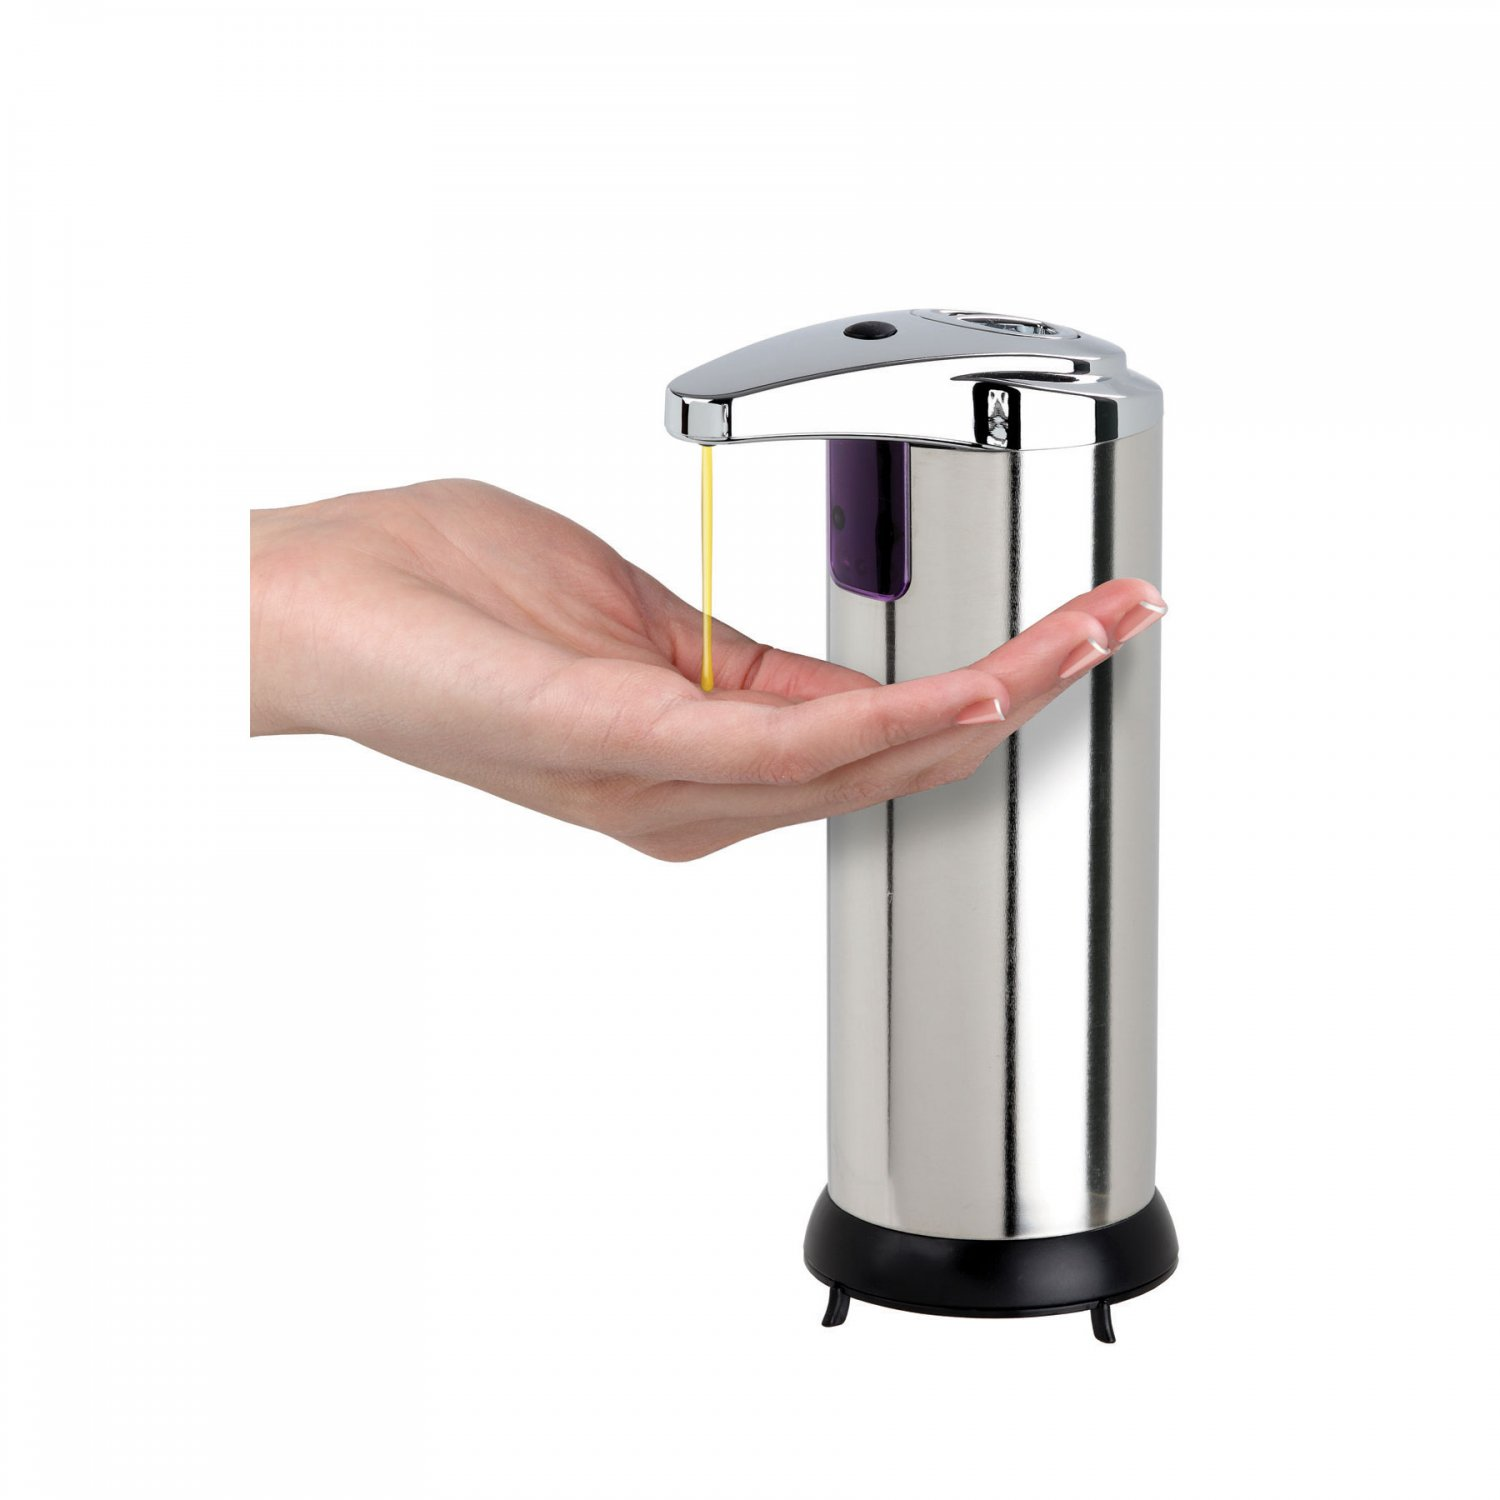 kitchen countertop soap dispenser travel trailers with rear touchless automatic handsfree chrome